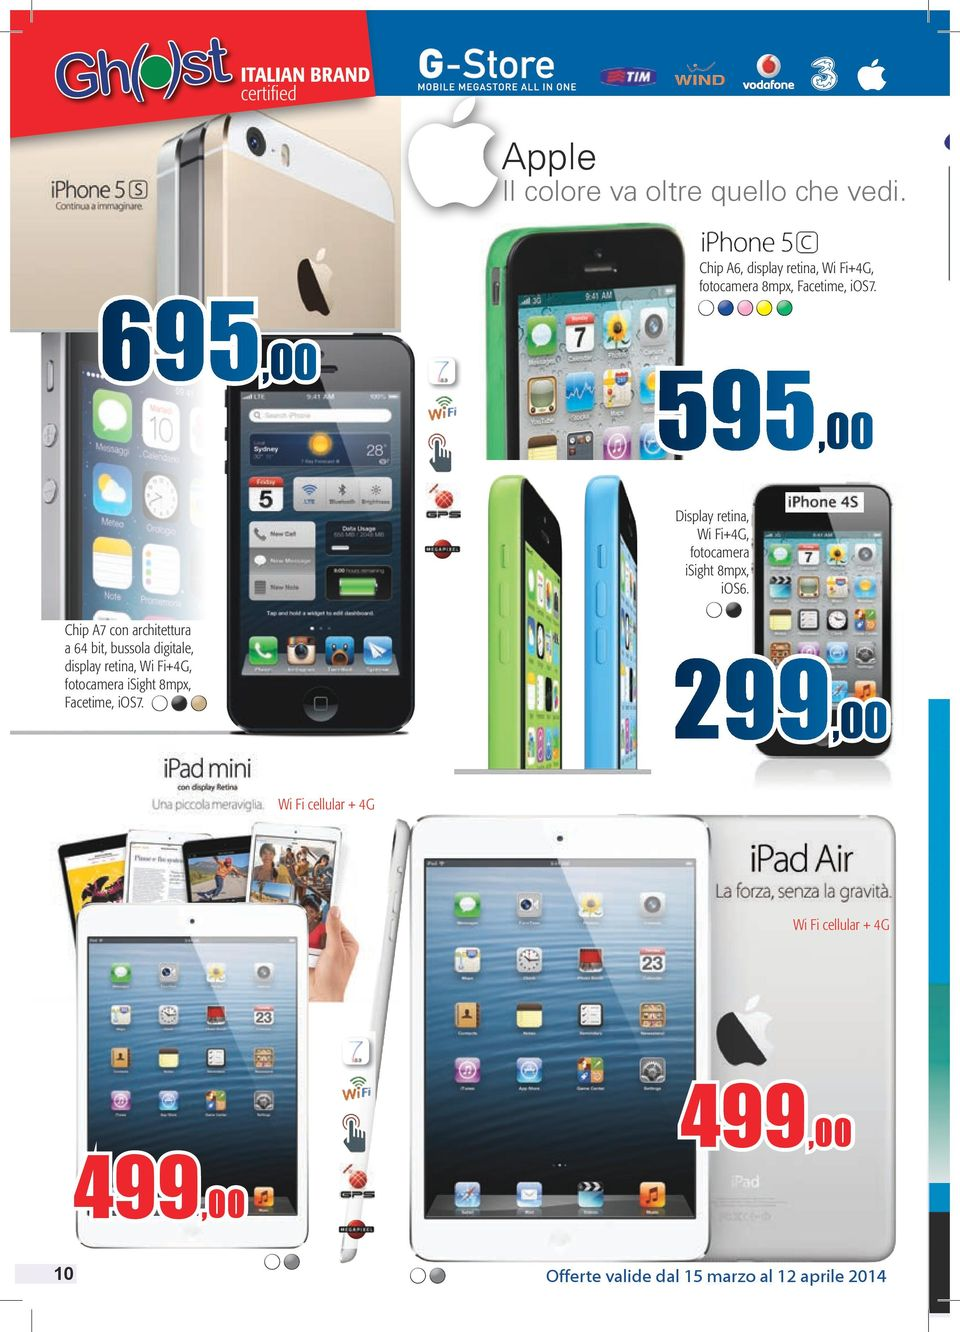 695,00 595,00 Display retina, Wi Fi+4G, fotocamera isight 8mpx, ios6.